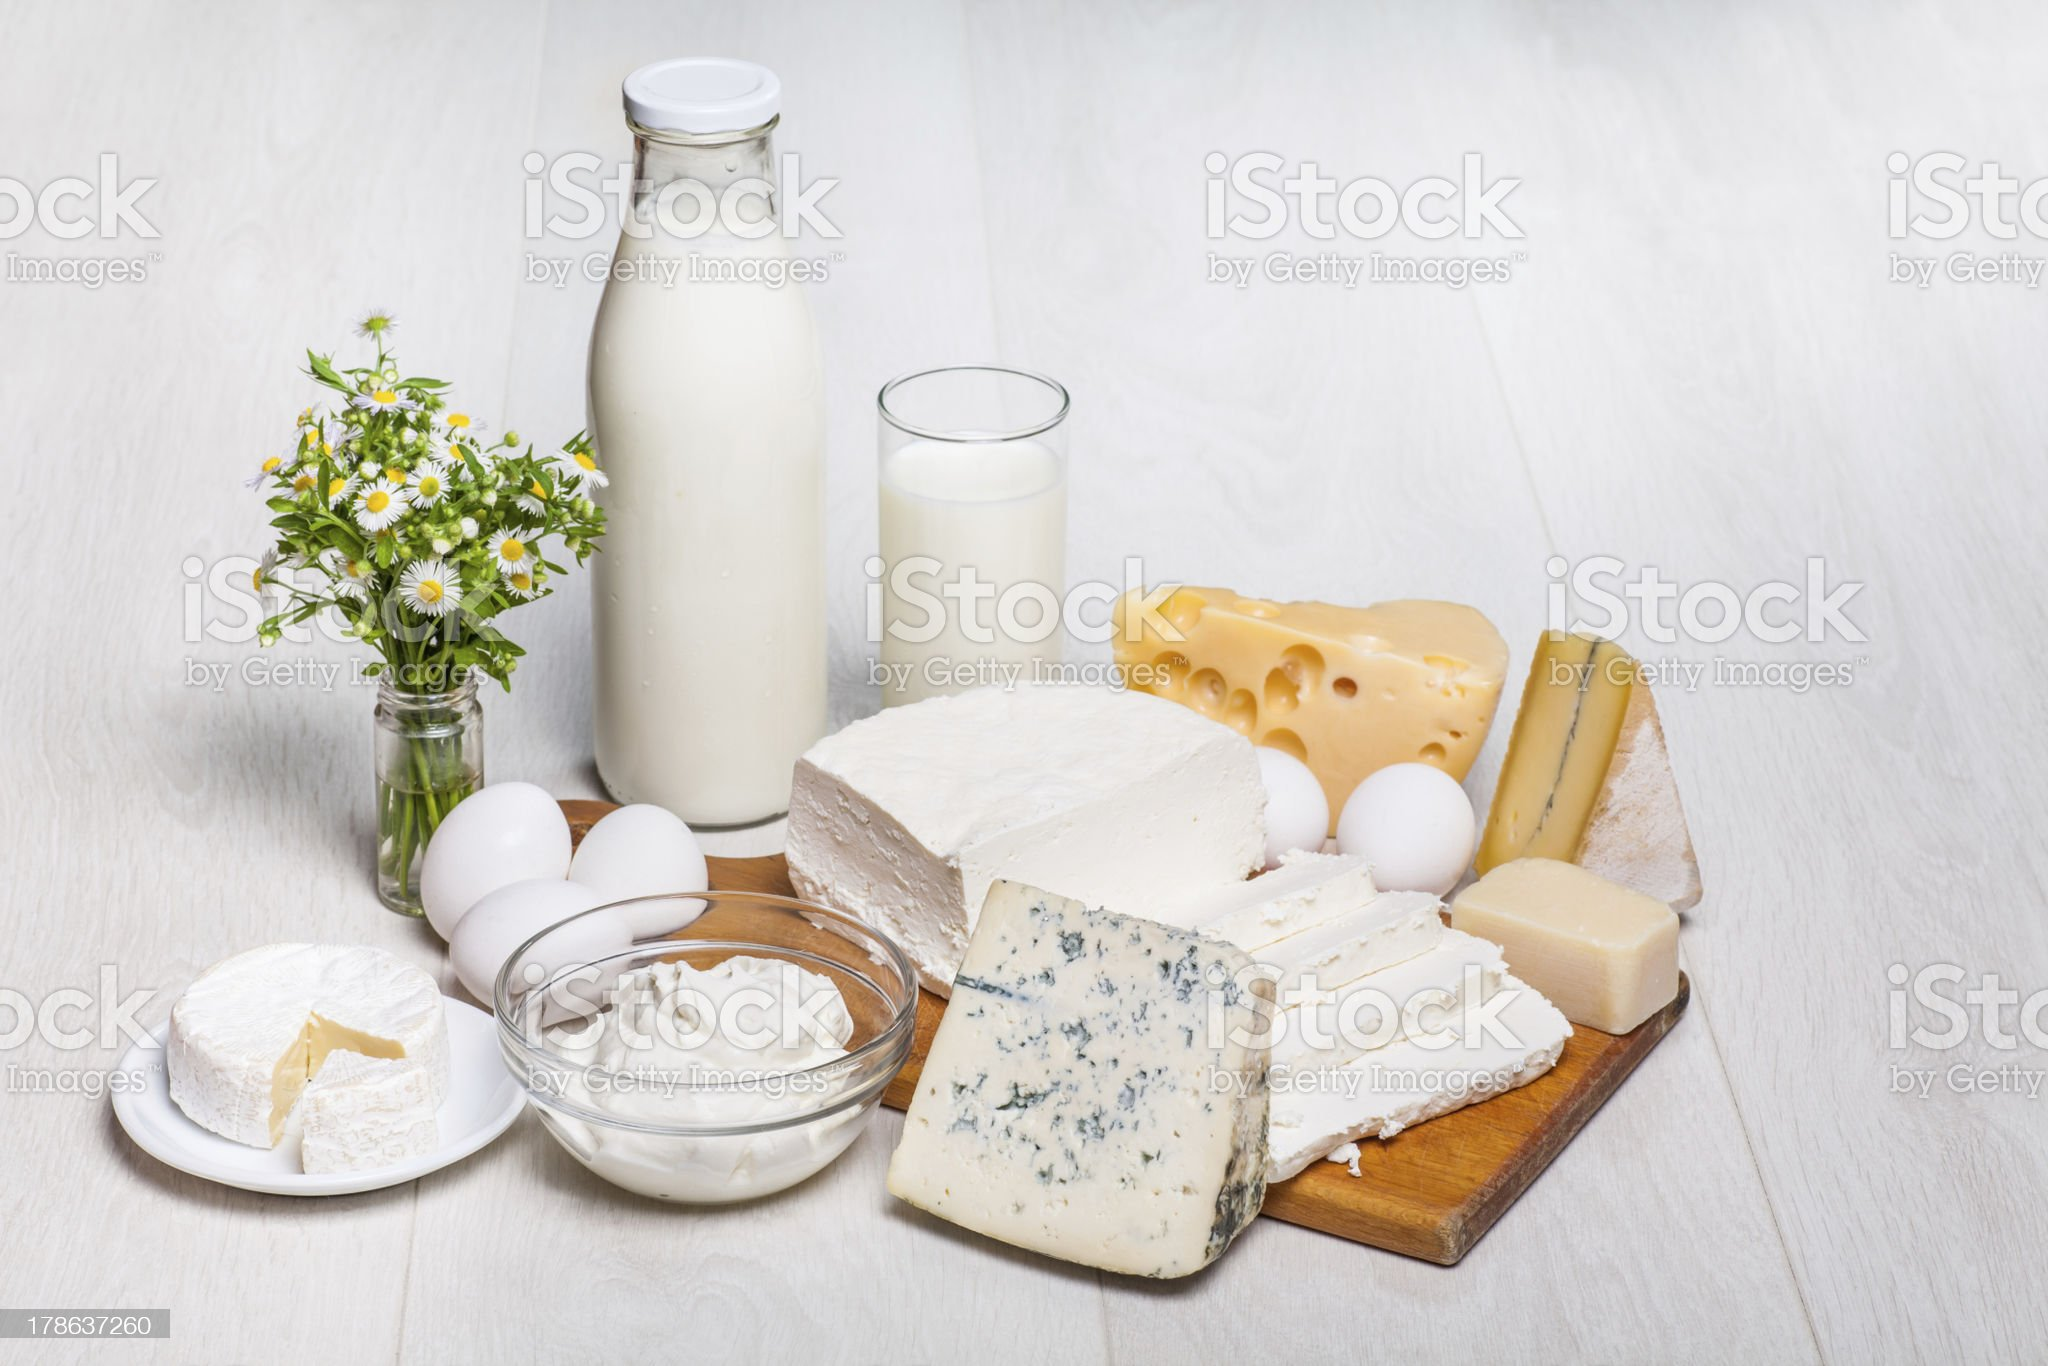 milk bottle and glass on wooden background, cottage cheese, eggs royalty-free stock photo